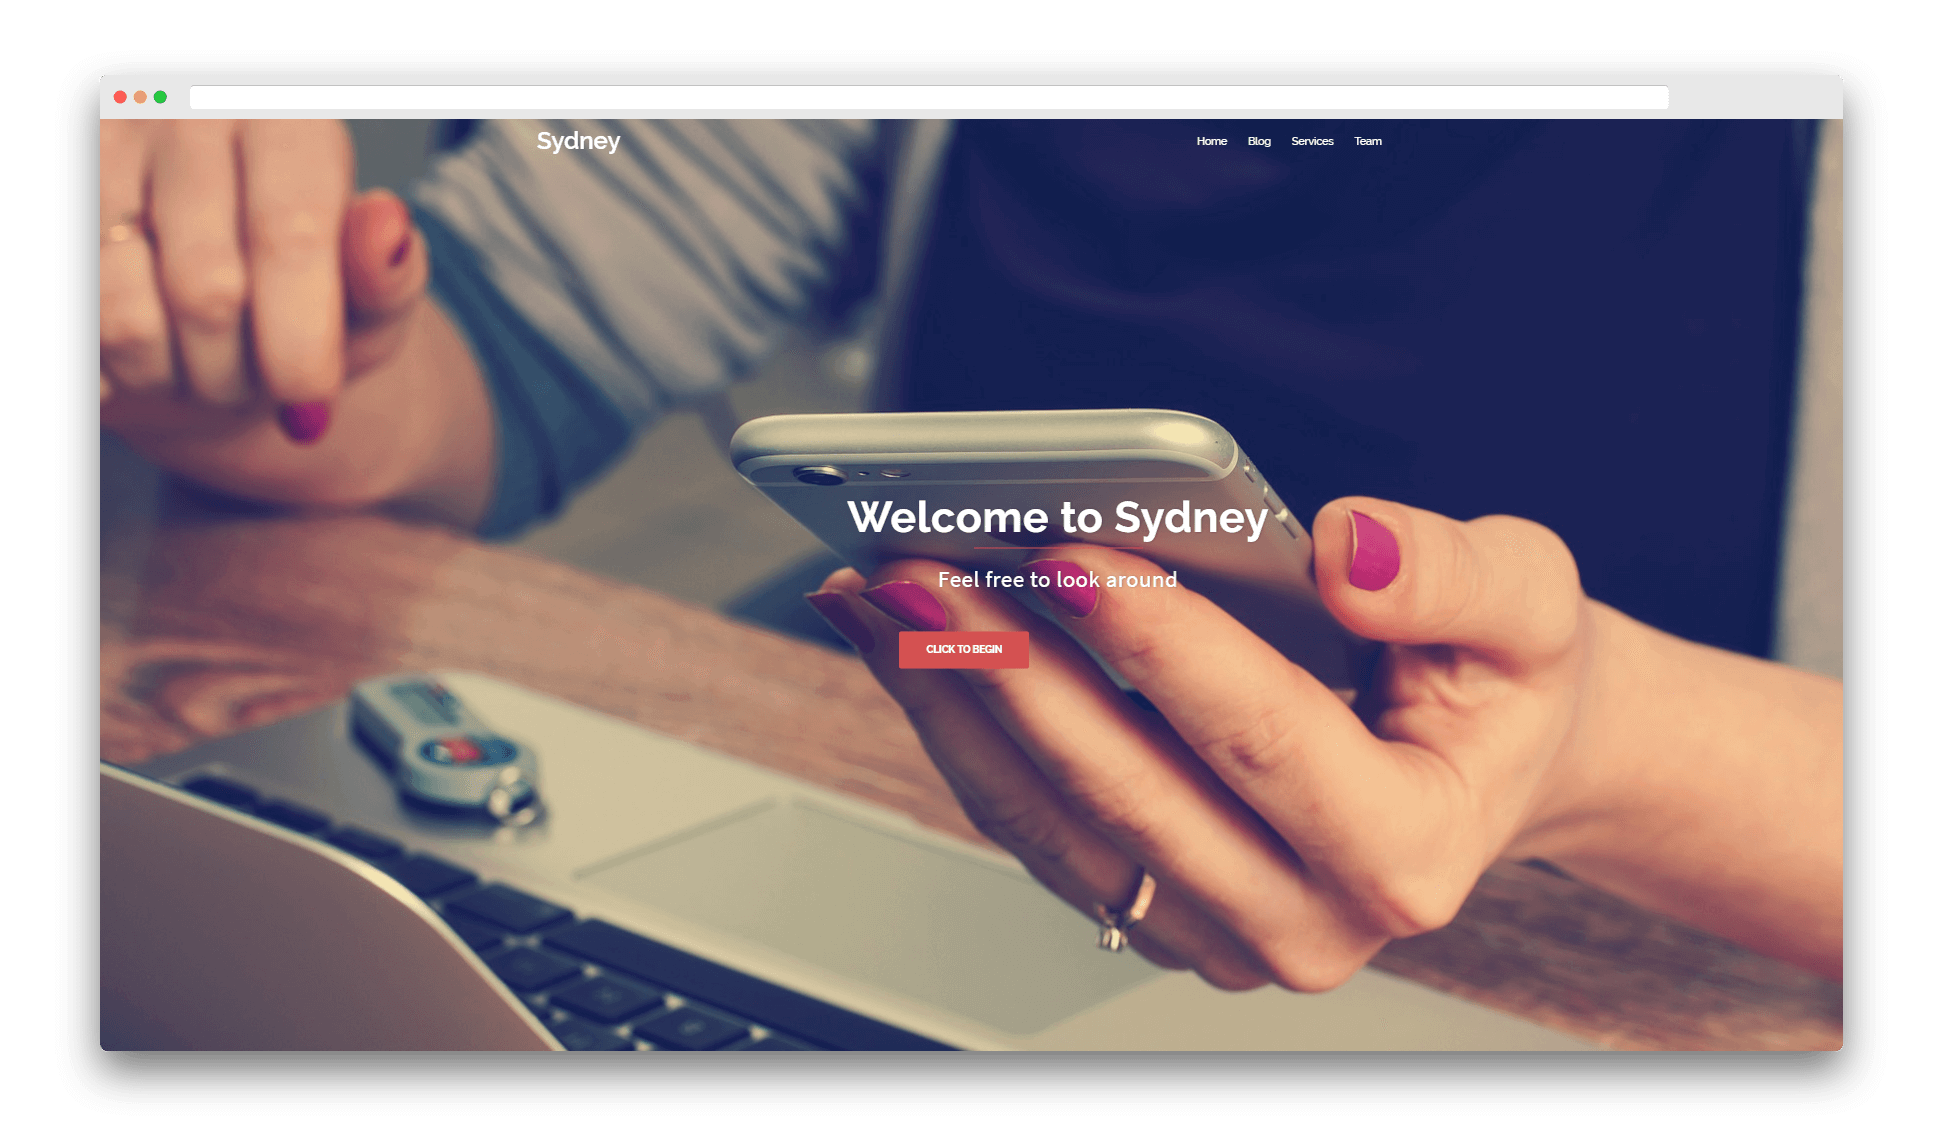 The Sydney theme demo, which works great with Elementor